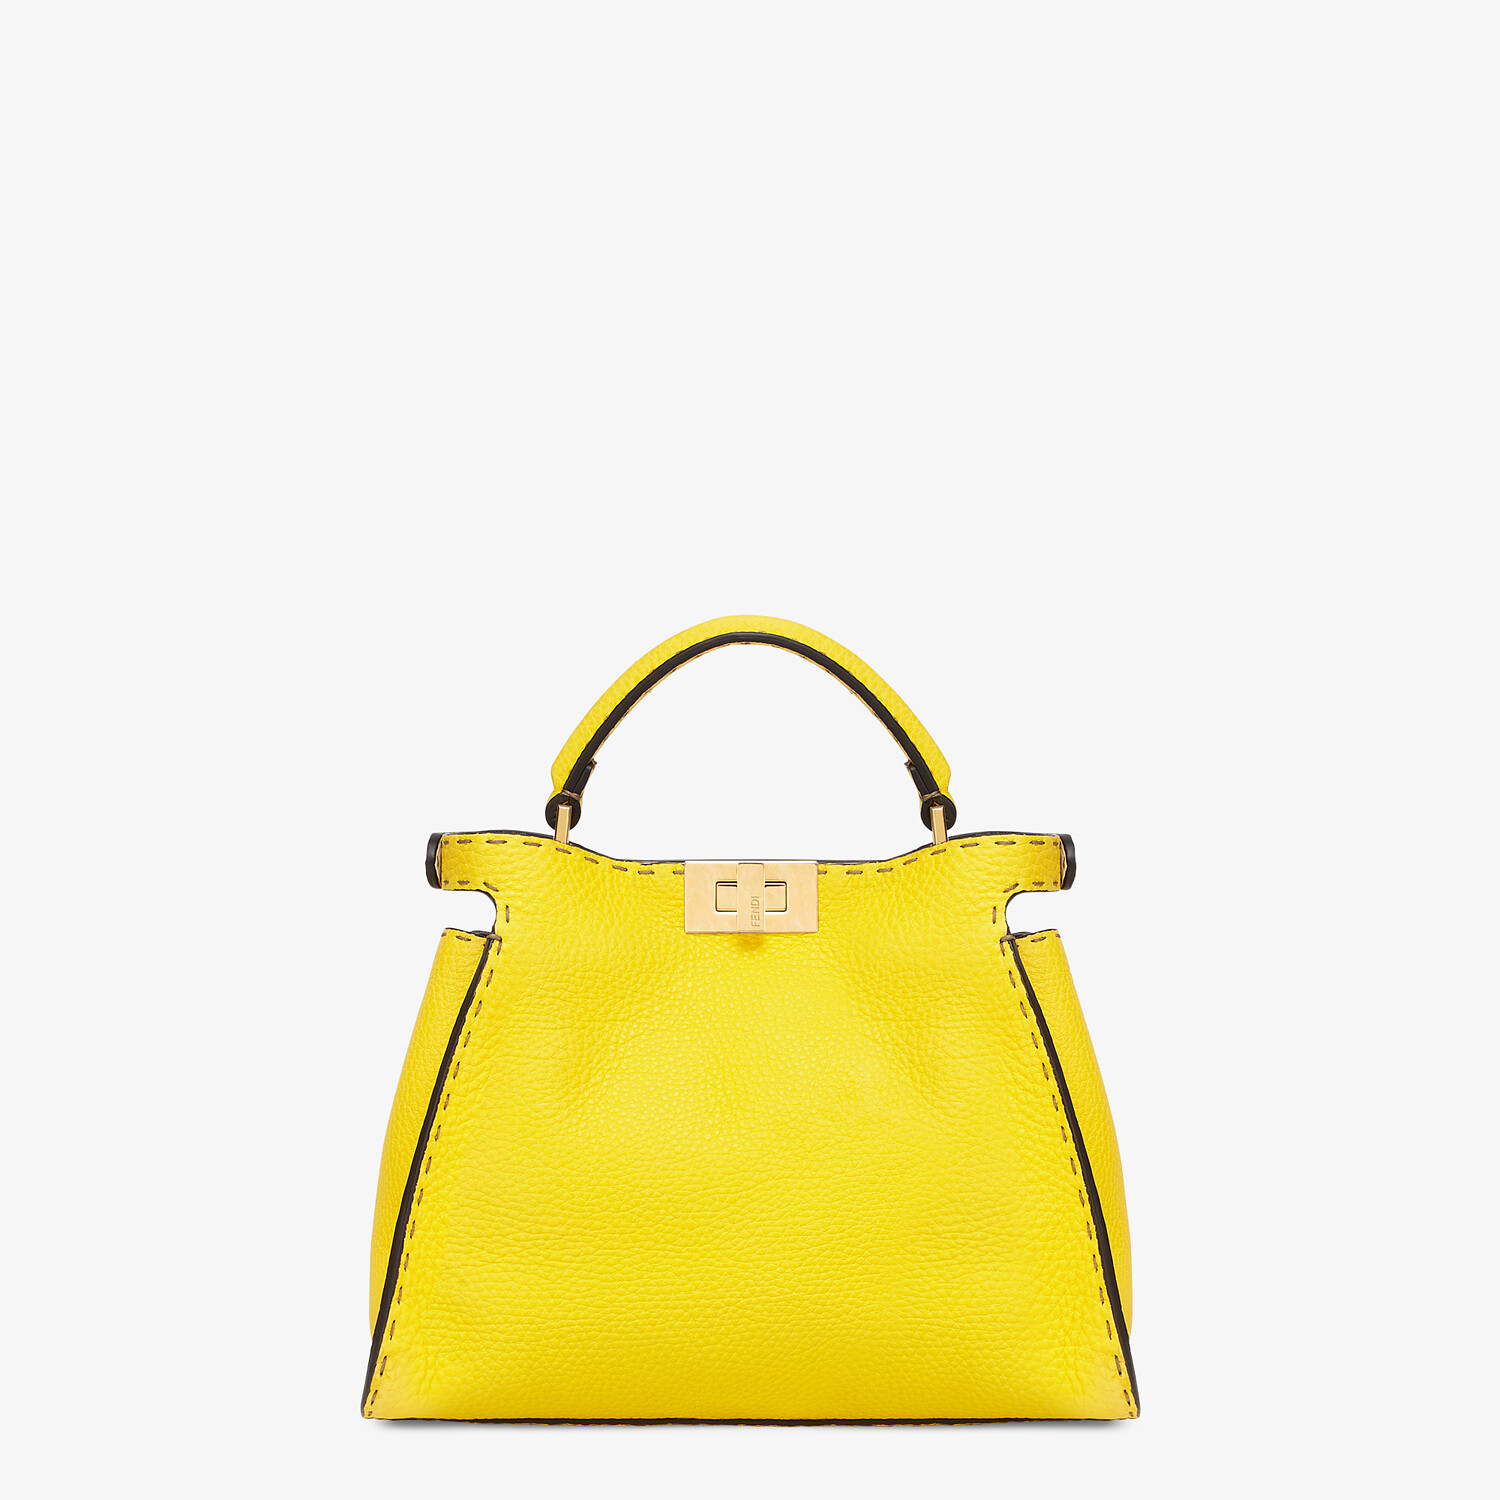 FENDI PEEKABOO ICONIC ESSENTIALLY - Yellow Cuoio Romano leather bag - view 4 detail